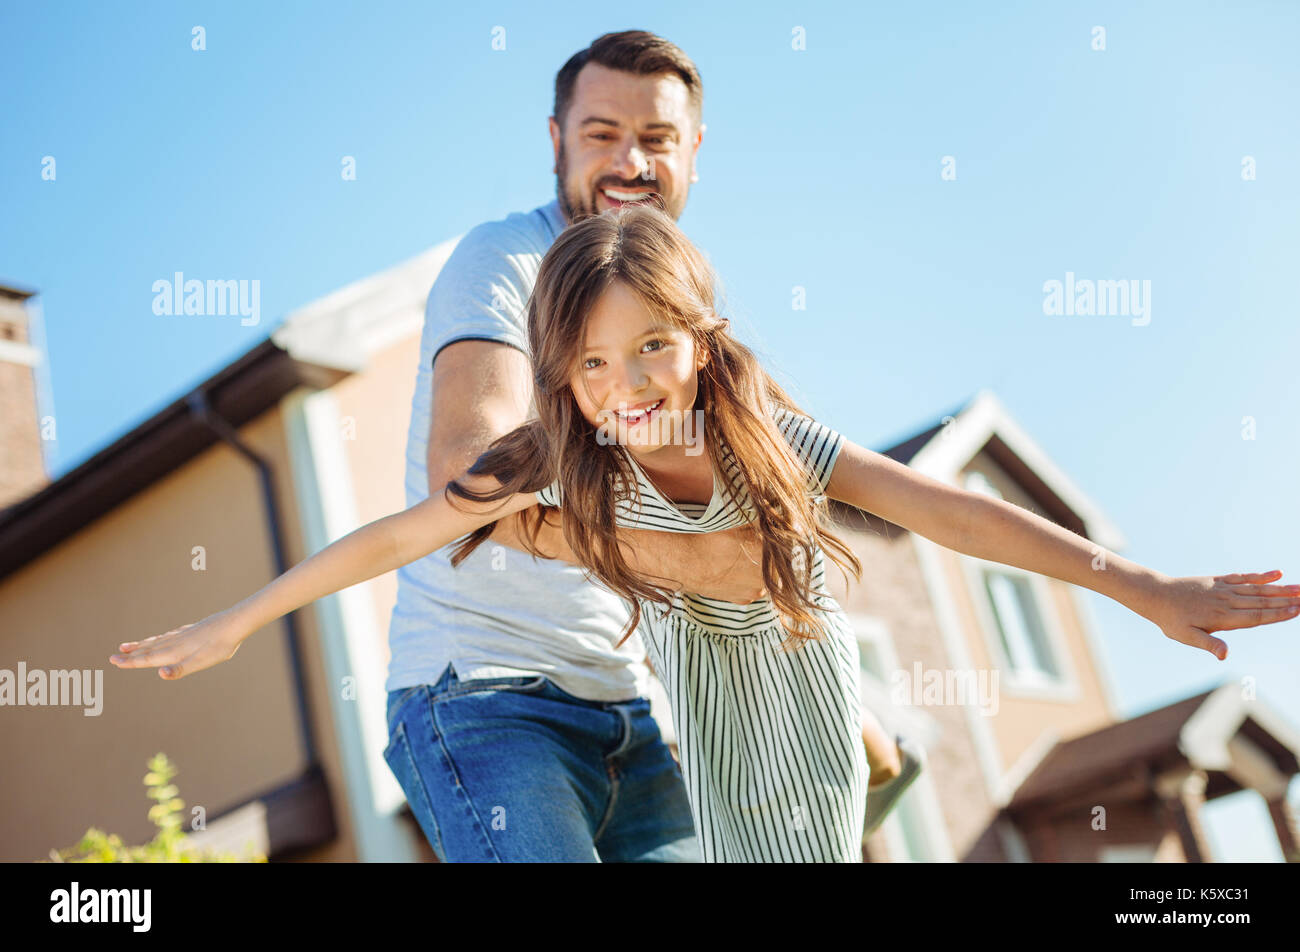 Smiling father playing with his happy daughter - Stock Image